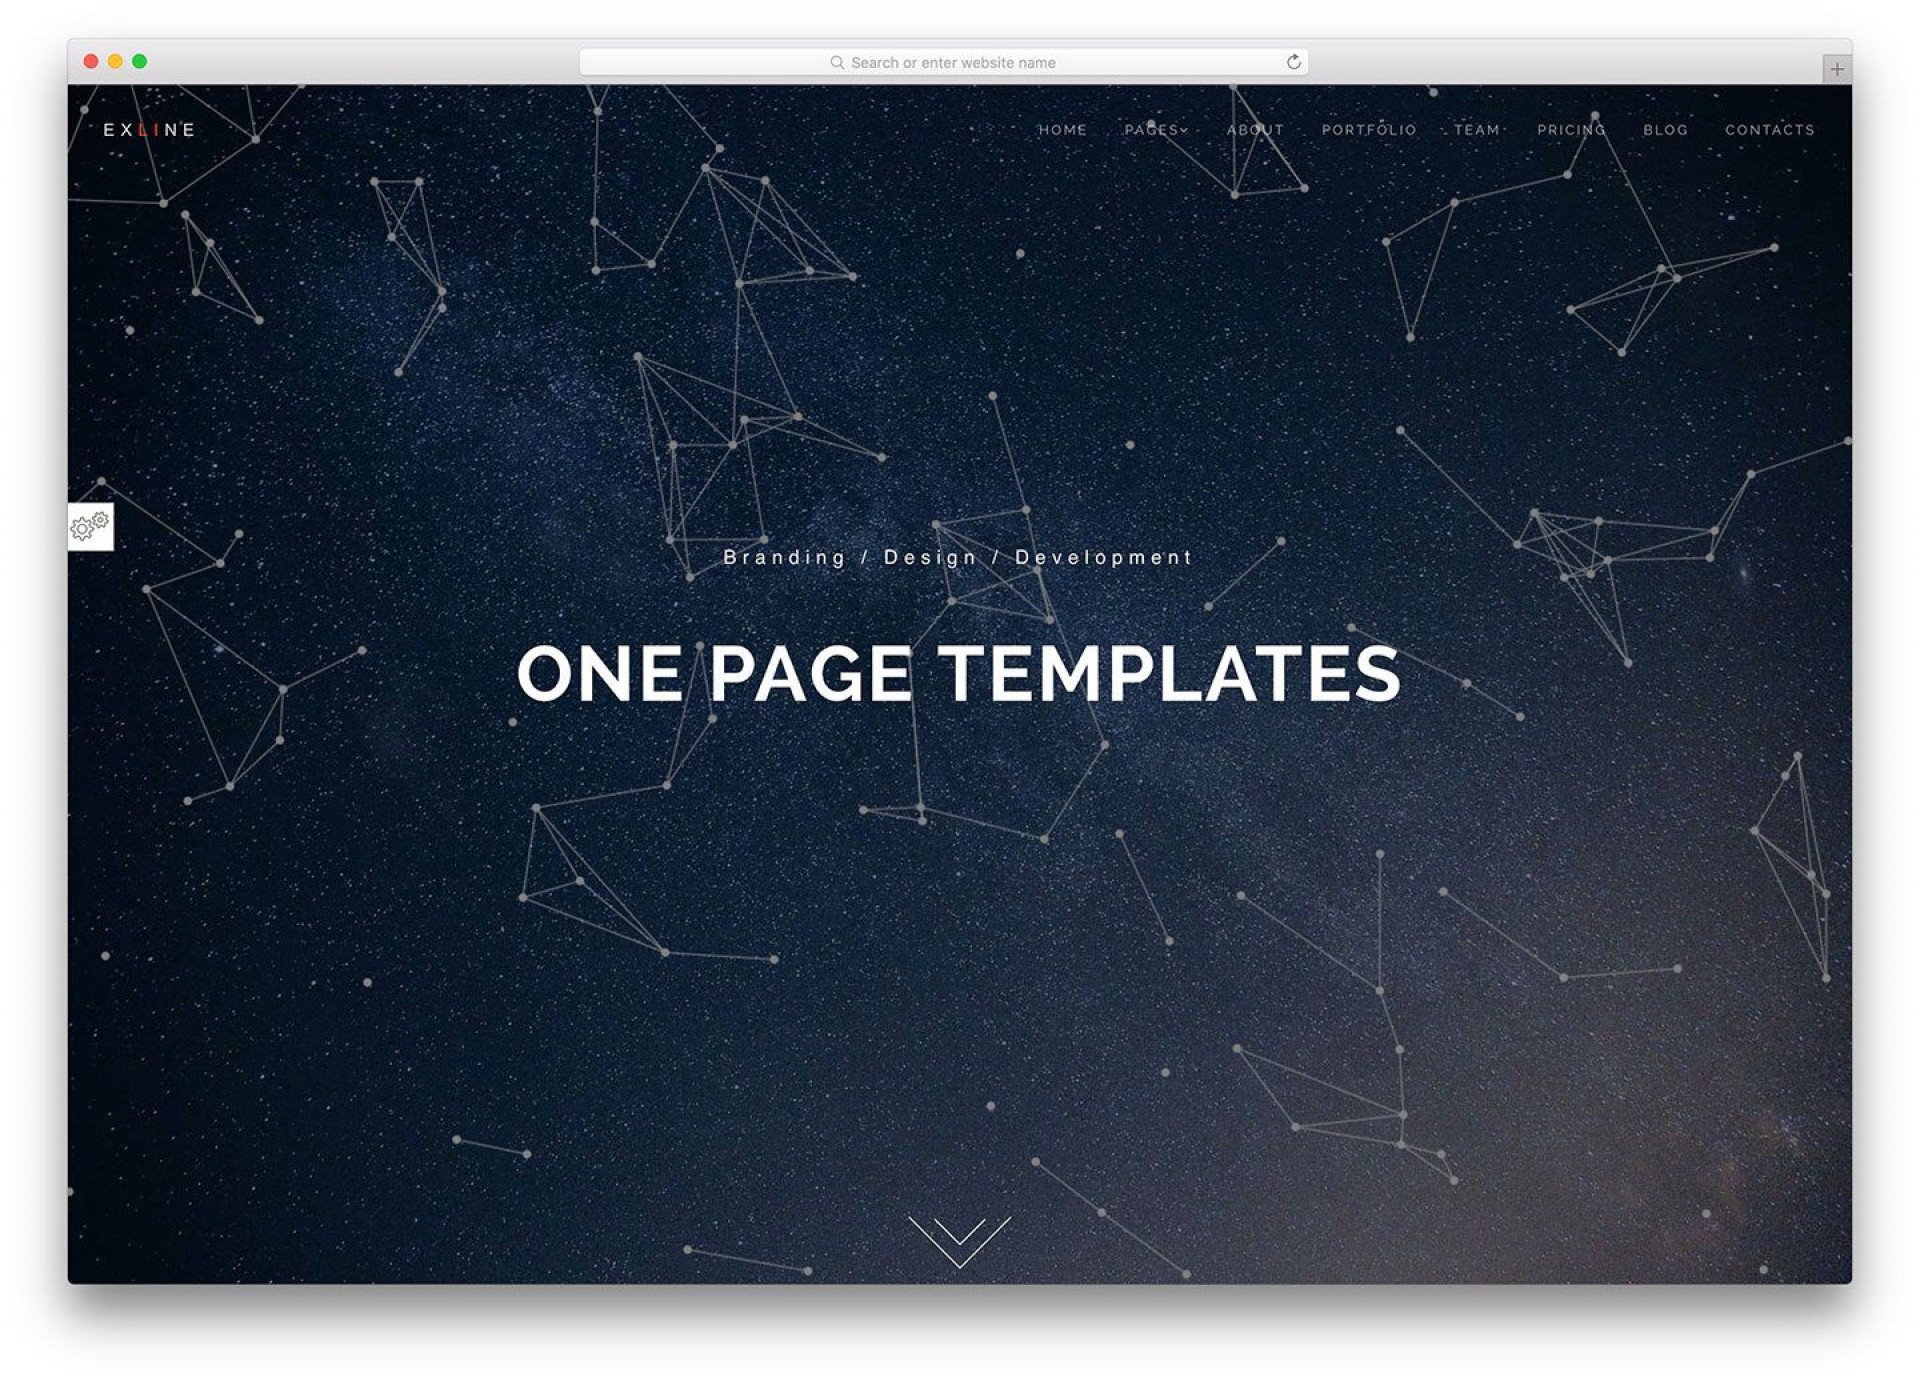 005 Impressive One Page Website Template Free Download Html5 High Definition  Parallax1920